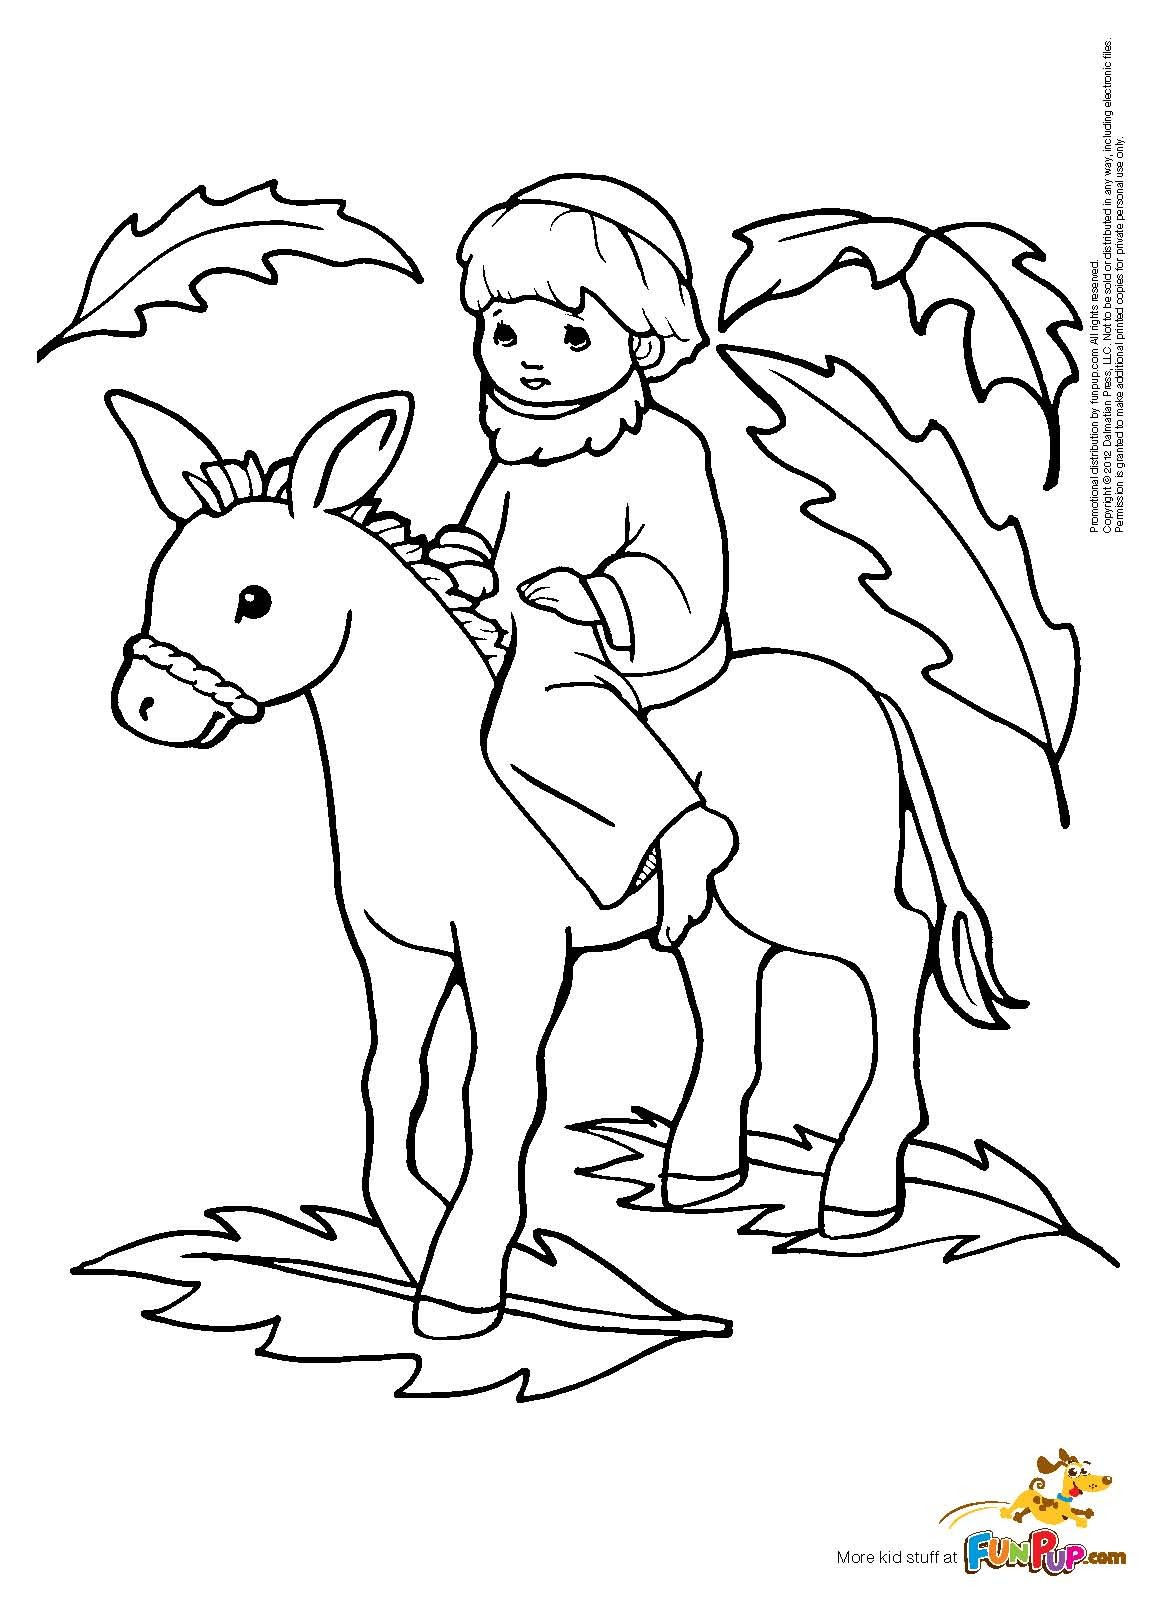 Palm Sunday Coloring Pages - Coloring Home